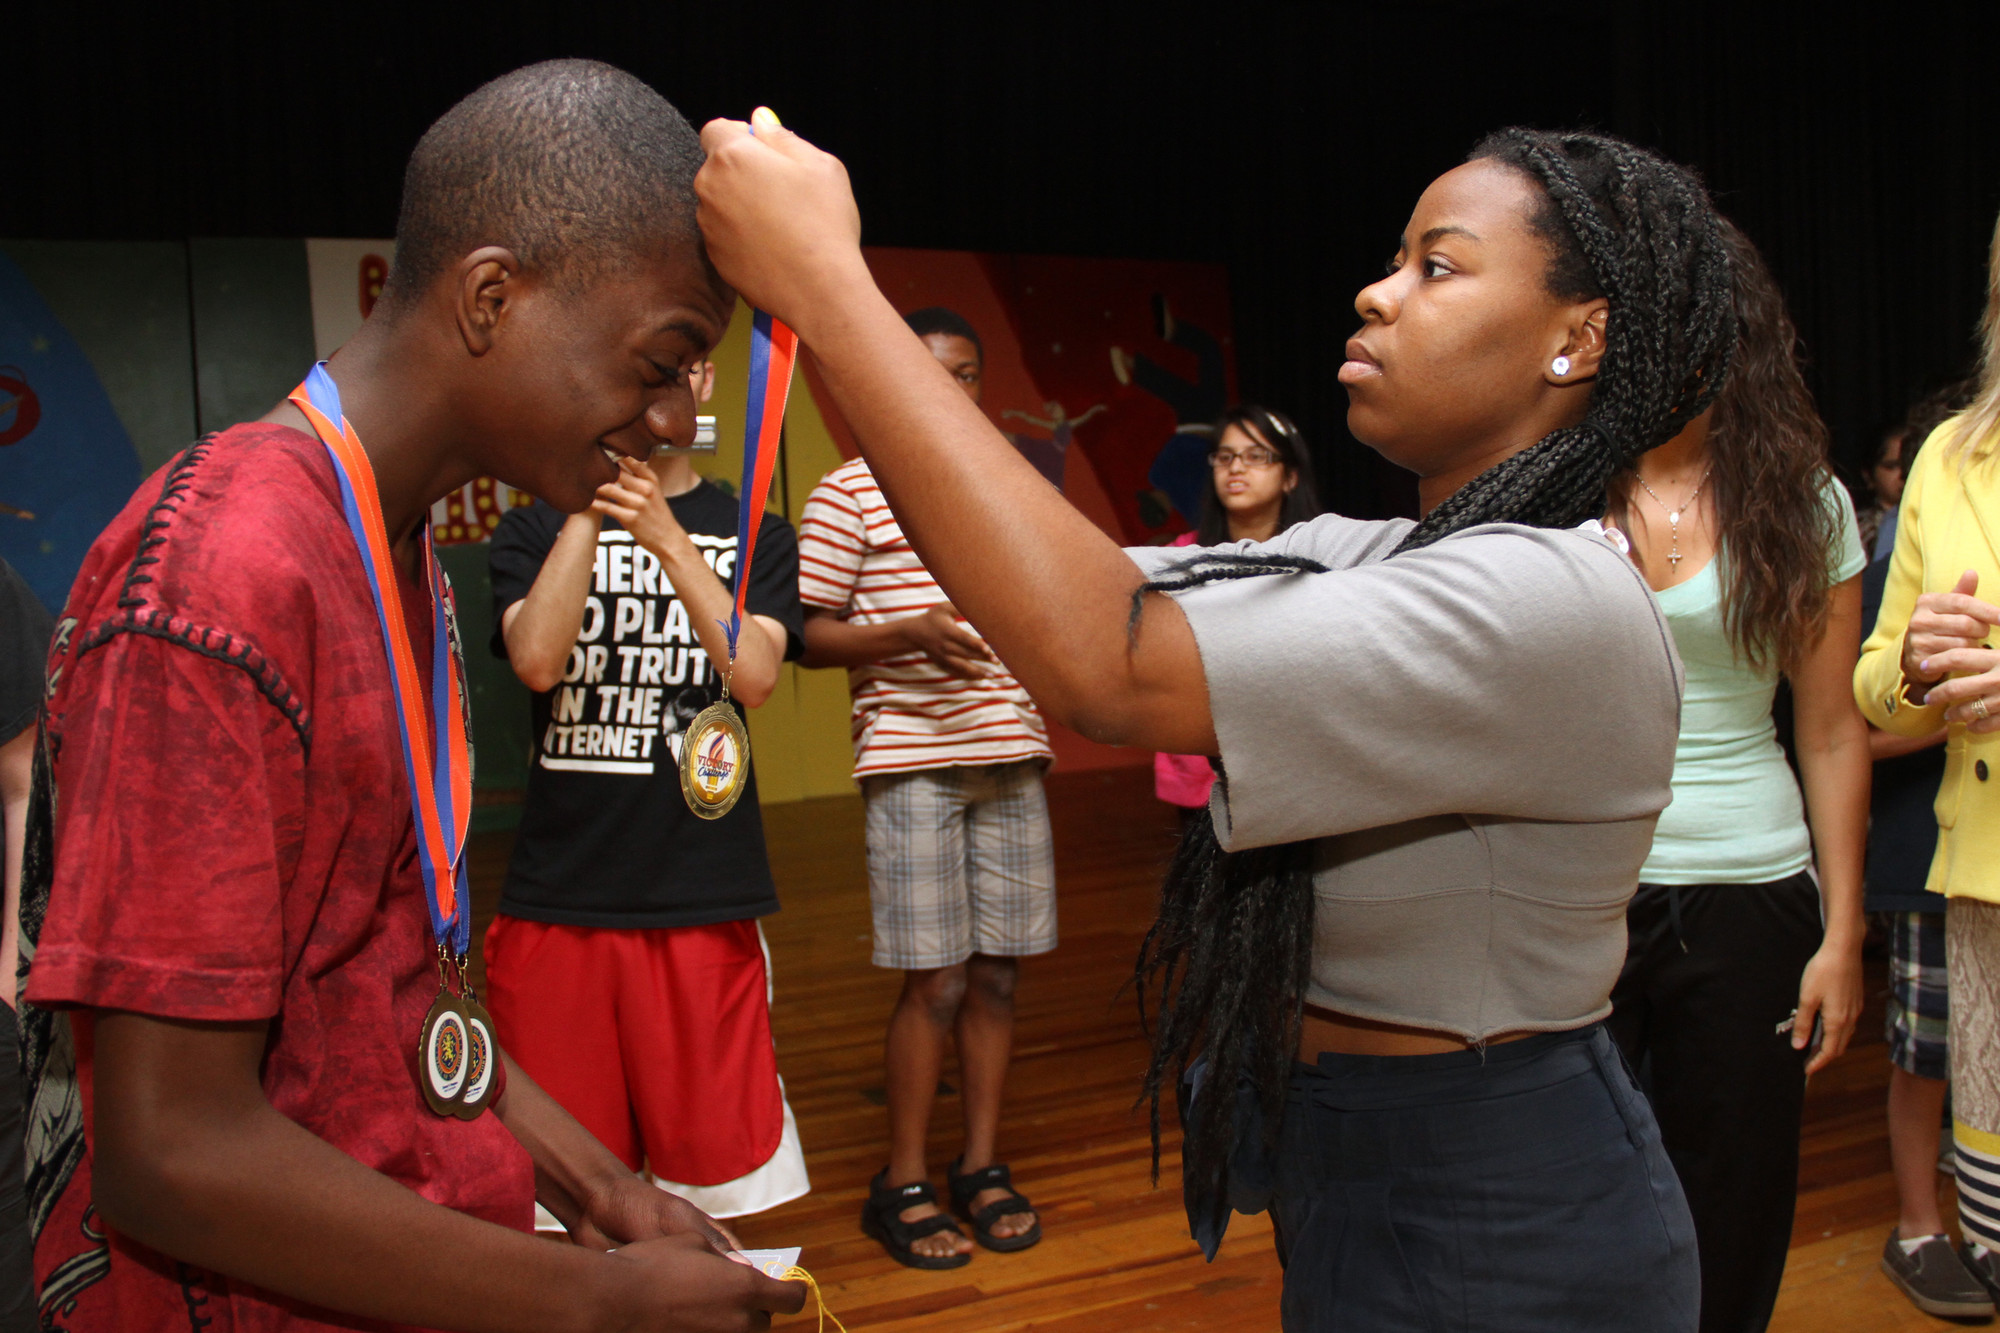 Joardany Jean-Pierre received a gold medal from Janice Louis at an awards presentation in South Hall on June 4.